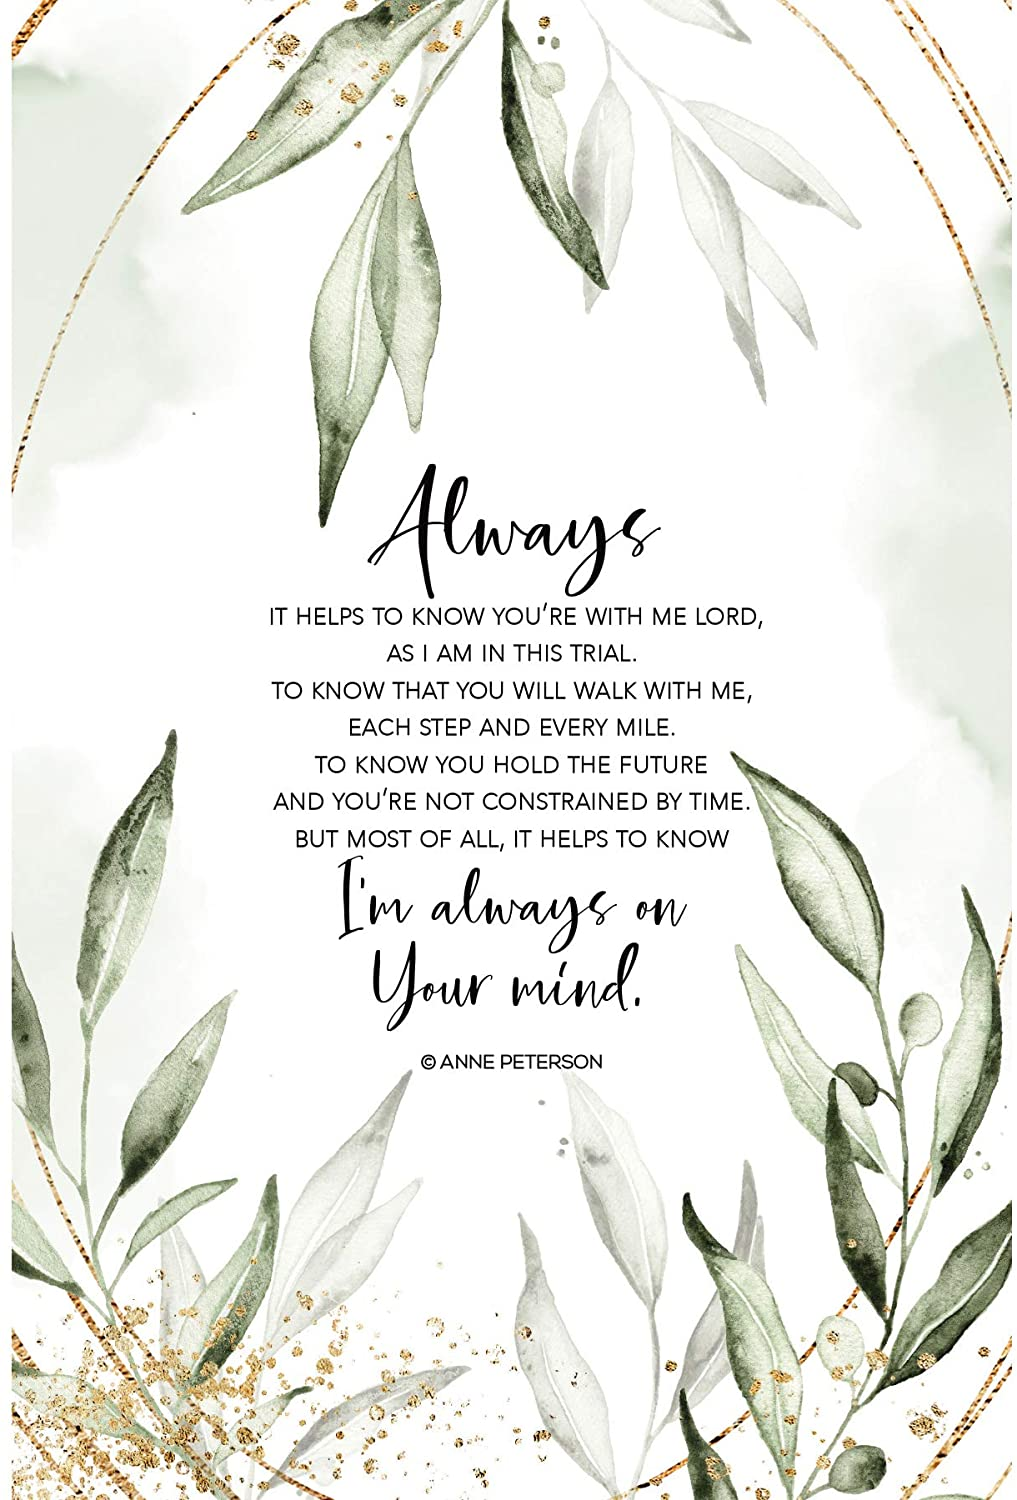 Wood Plaque with Inspiring Quotes 6 inches x 9 inches - Elegant Vertical Frame Wall & Tabletop Decoration | Easel & Hanging Hook | Always - It Helps to Know You're with me Lord, as I am in This Trial